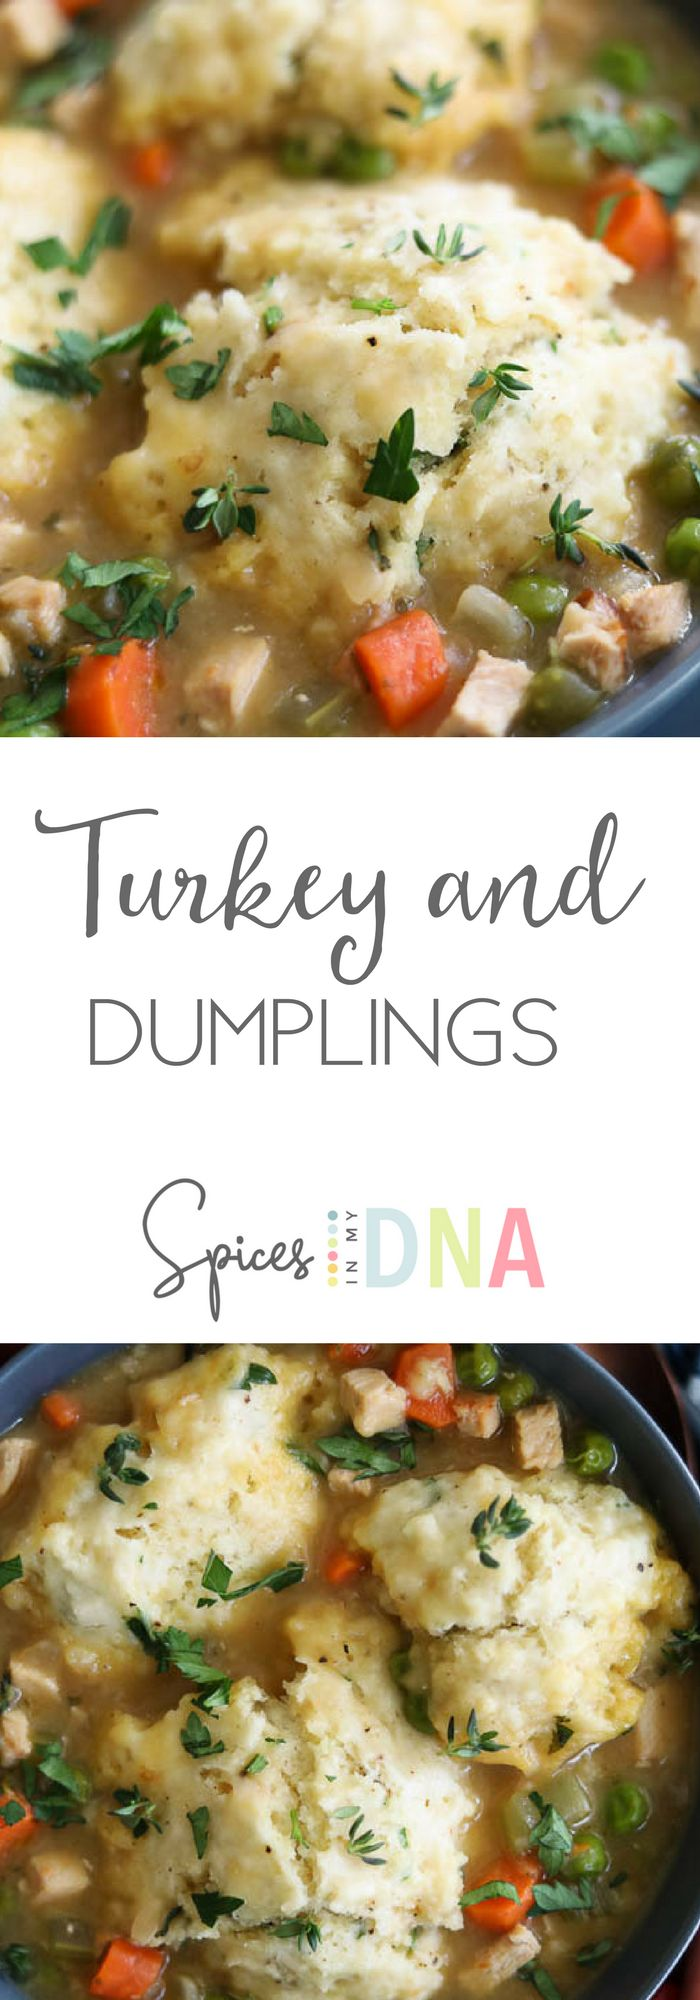 This super comforting turkey and dumplings is perfect to make using your leftover Thanksgiving turkey! The best part: it comes together in about 30 minutes!